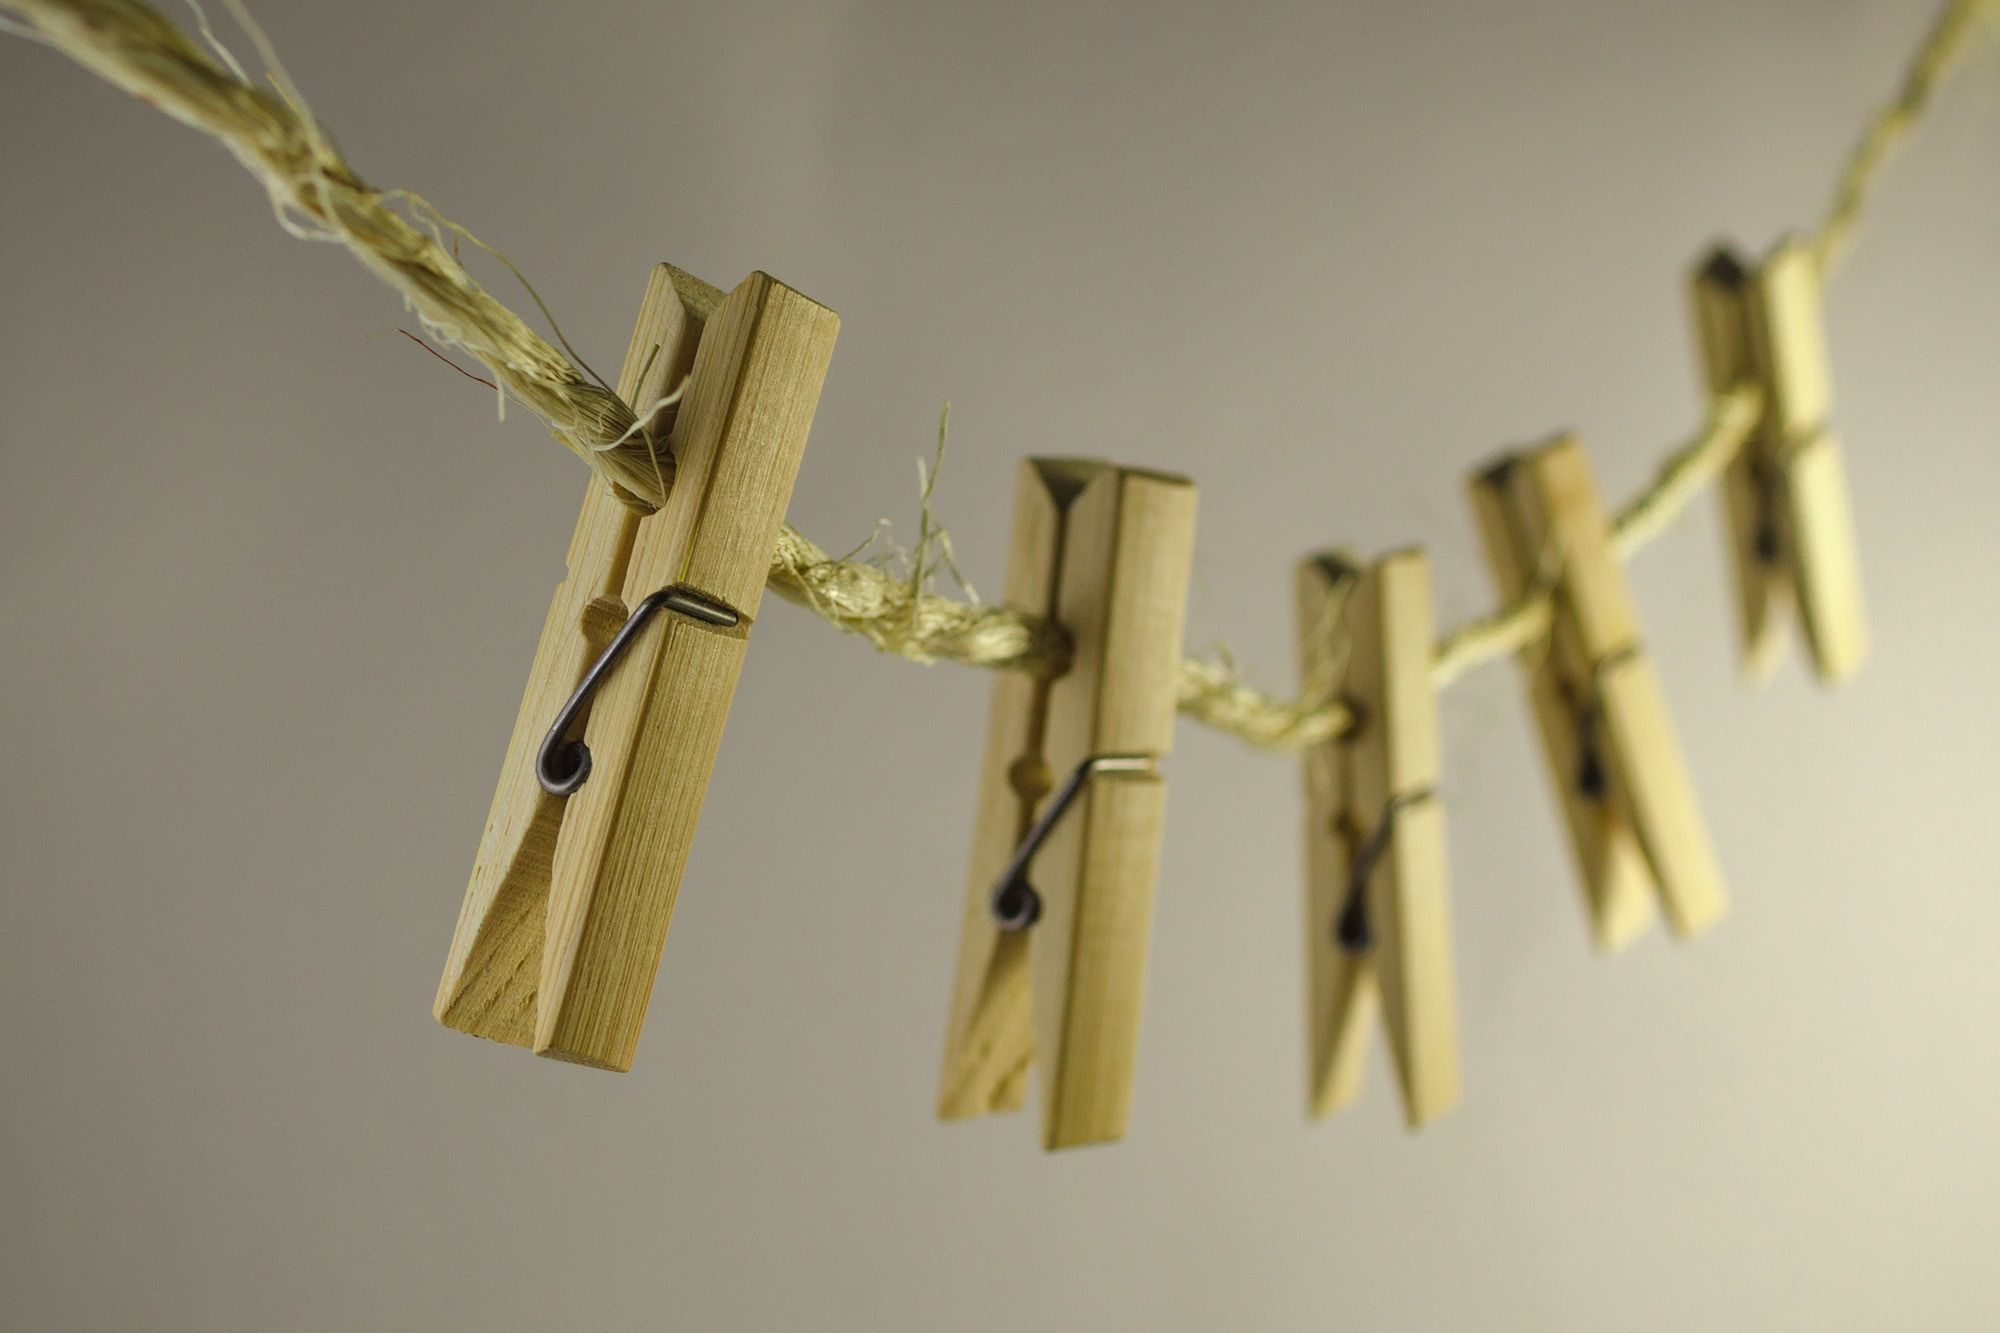 Wooden pegs on a washing line.